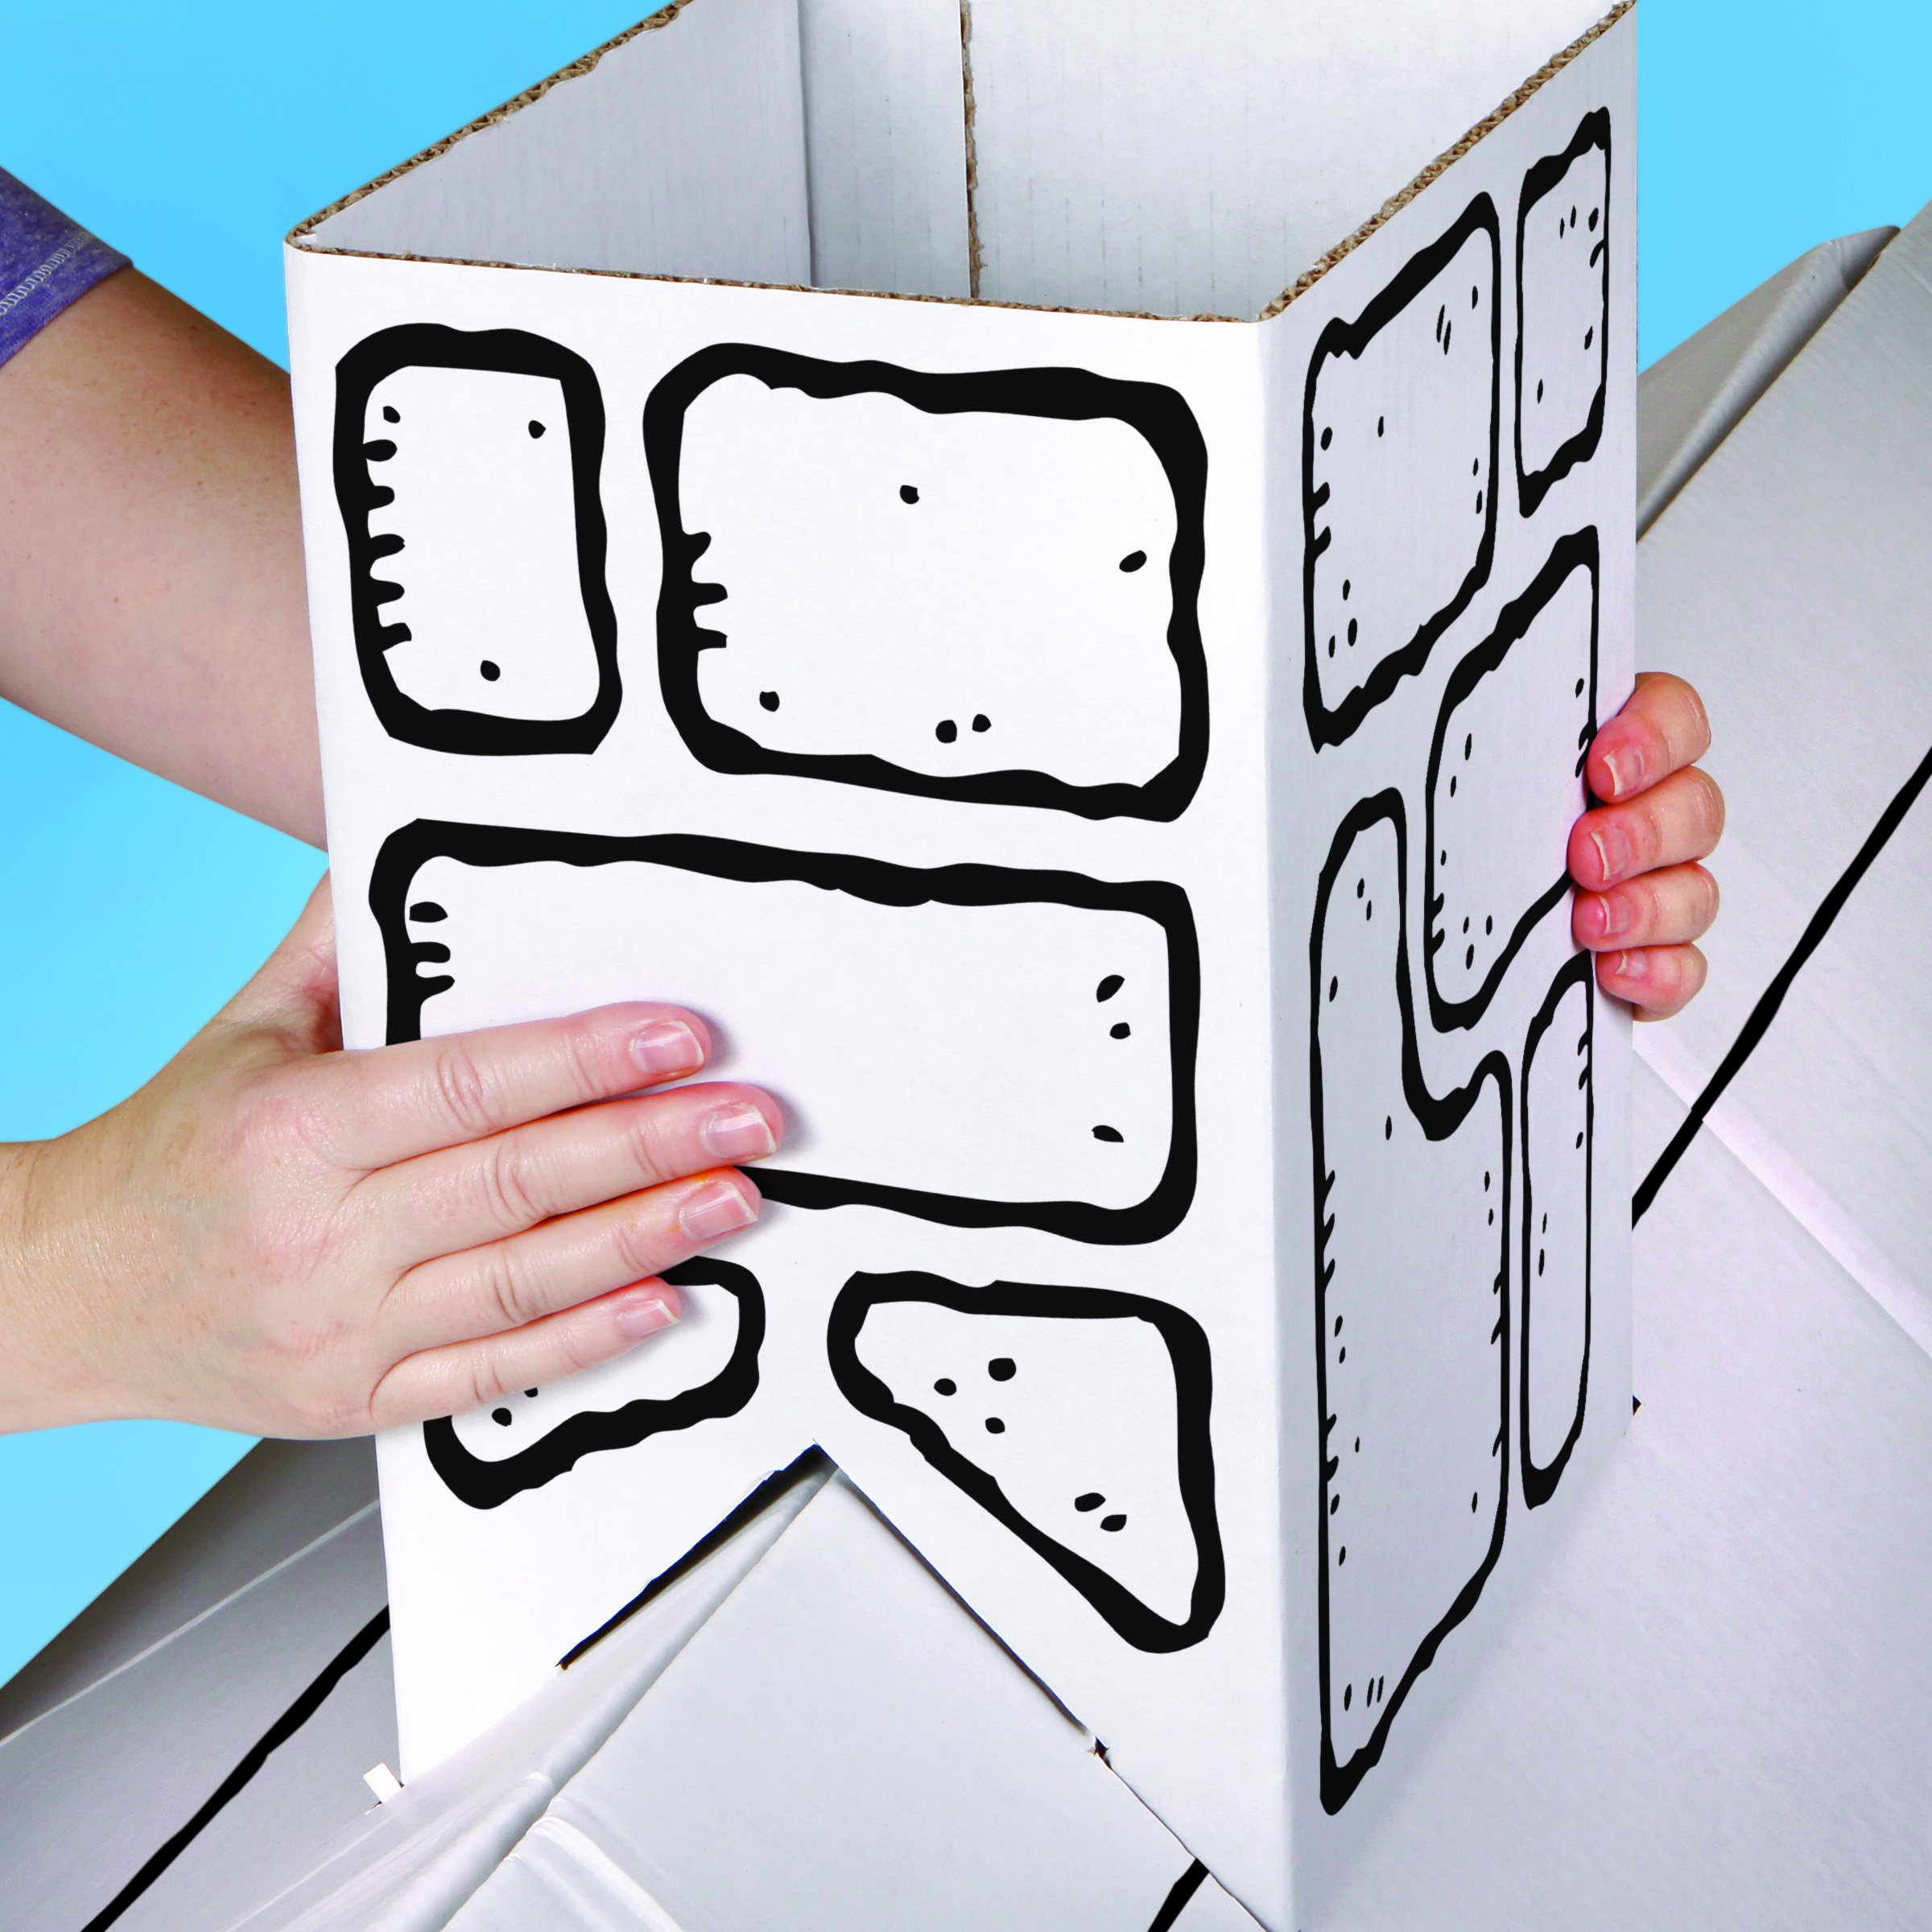 Discovery Kids Cardboard Color and Play Play House by Discovery Kids (Image #4)